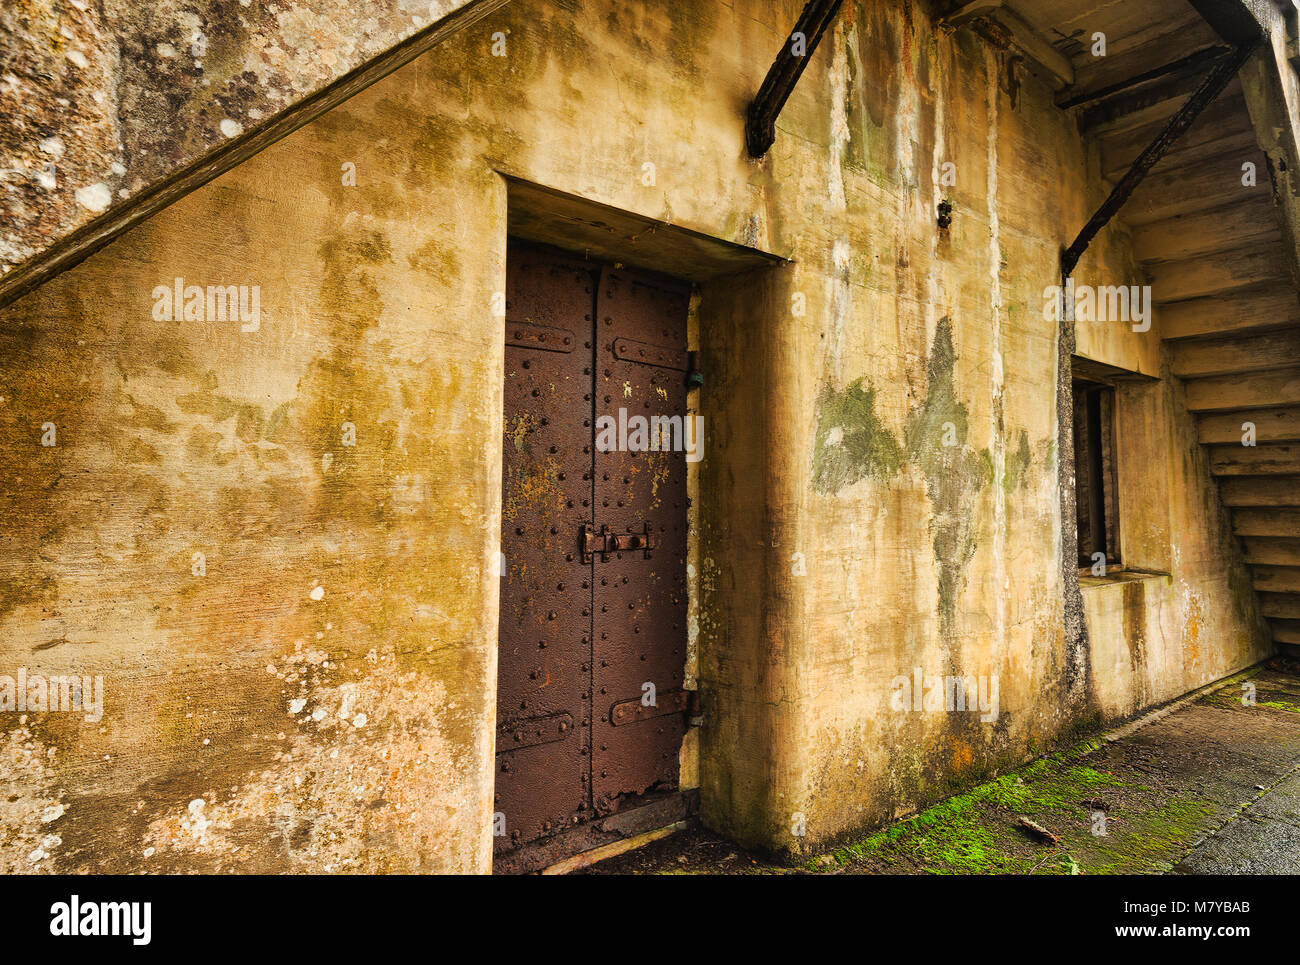 Exterior wall of an old abandoned bunker with steel door. Stock Photo